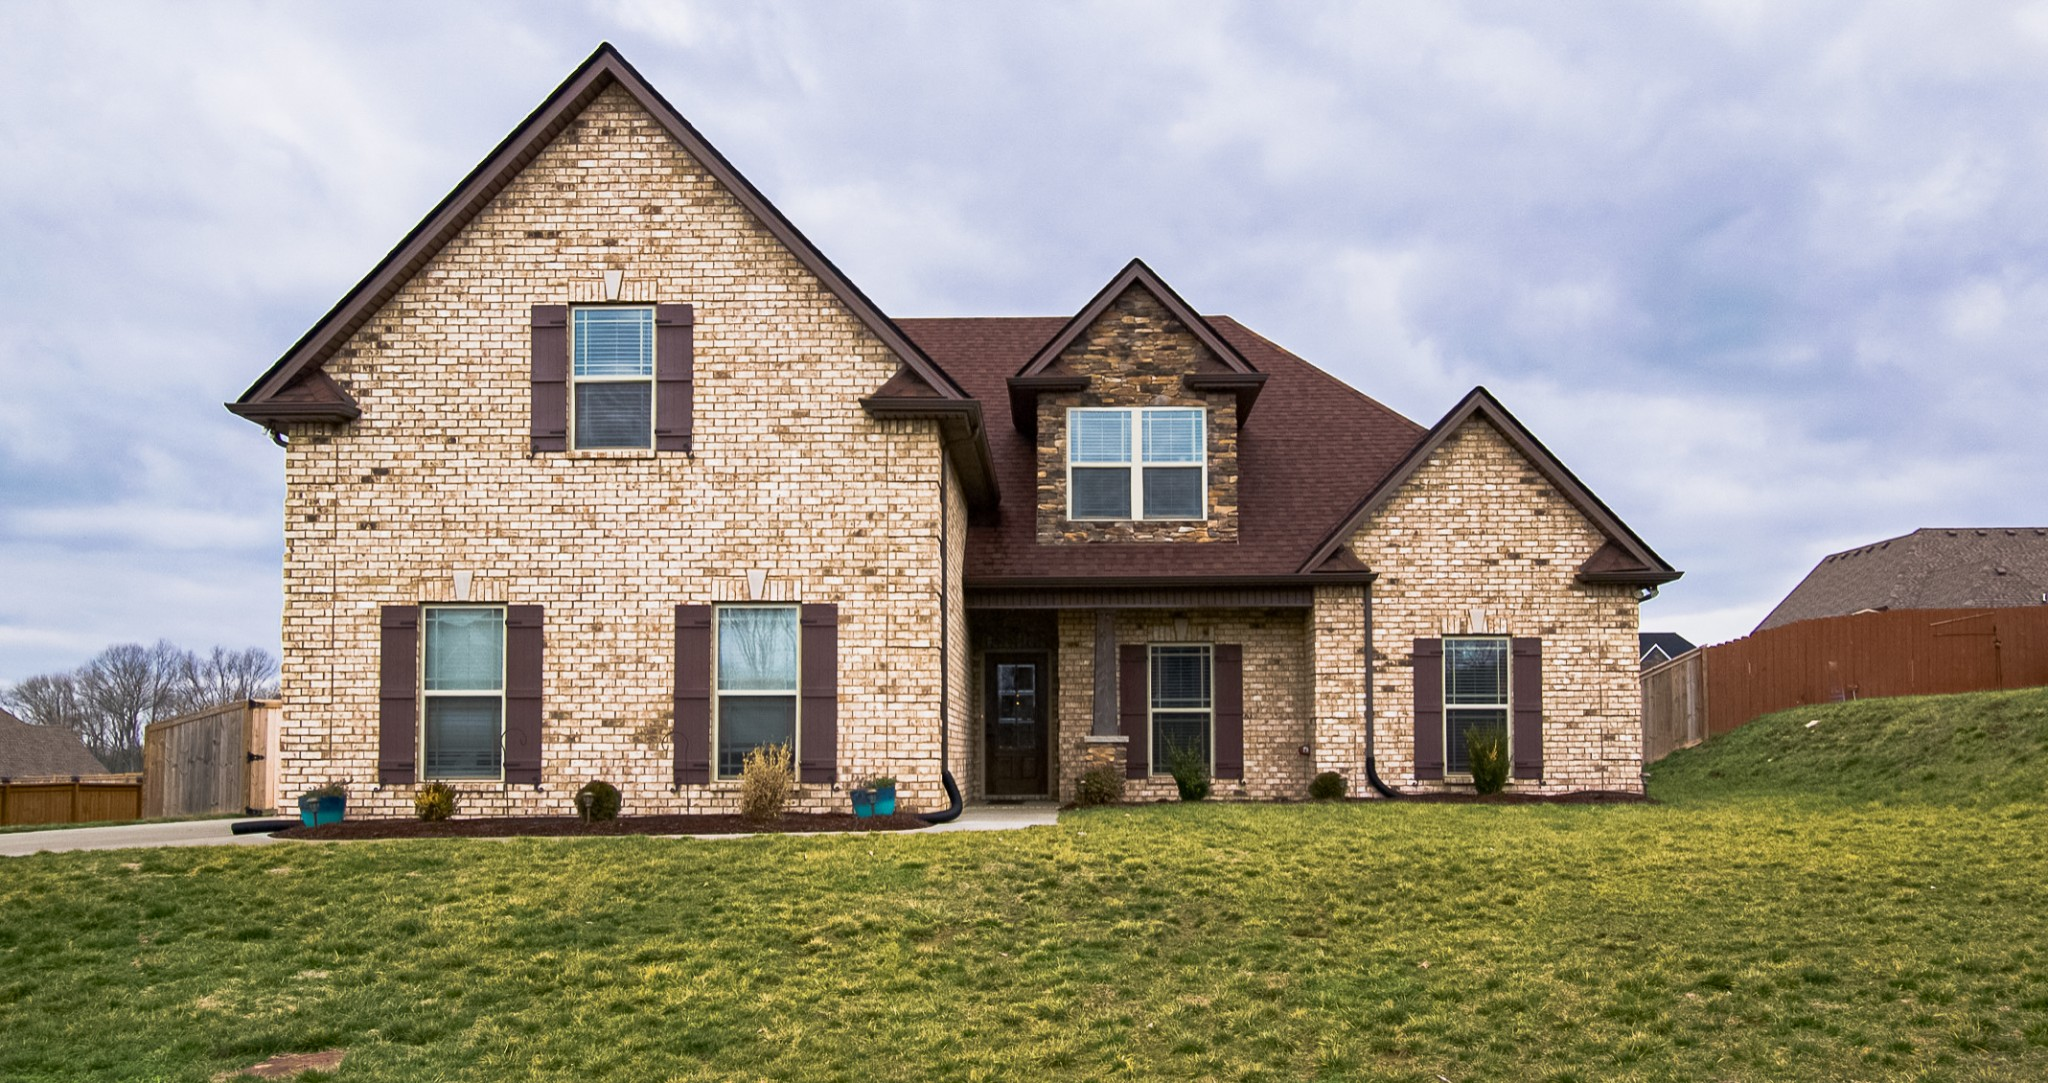 1145 Spring Creek Dr, Murfreesboro, TN 37129 - Murfreesboro, TN real estate listing